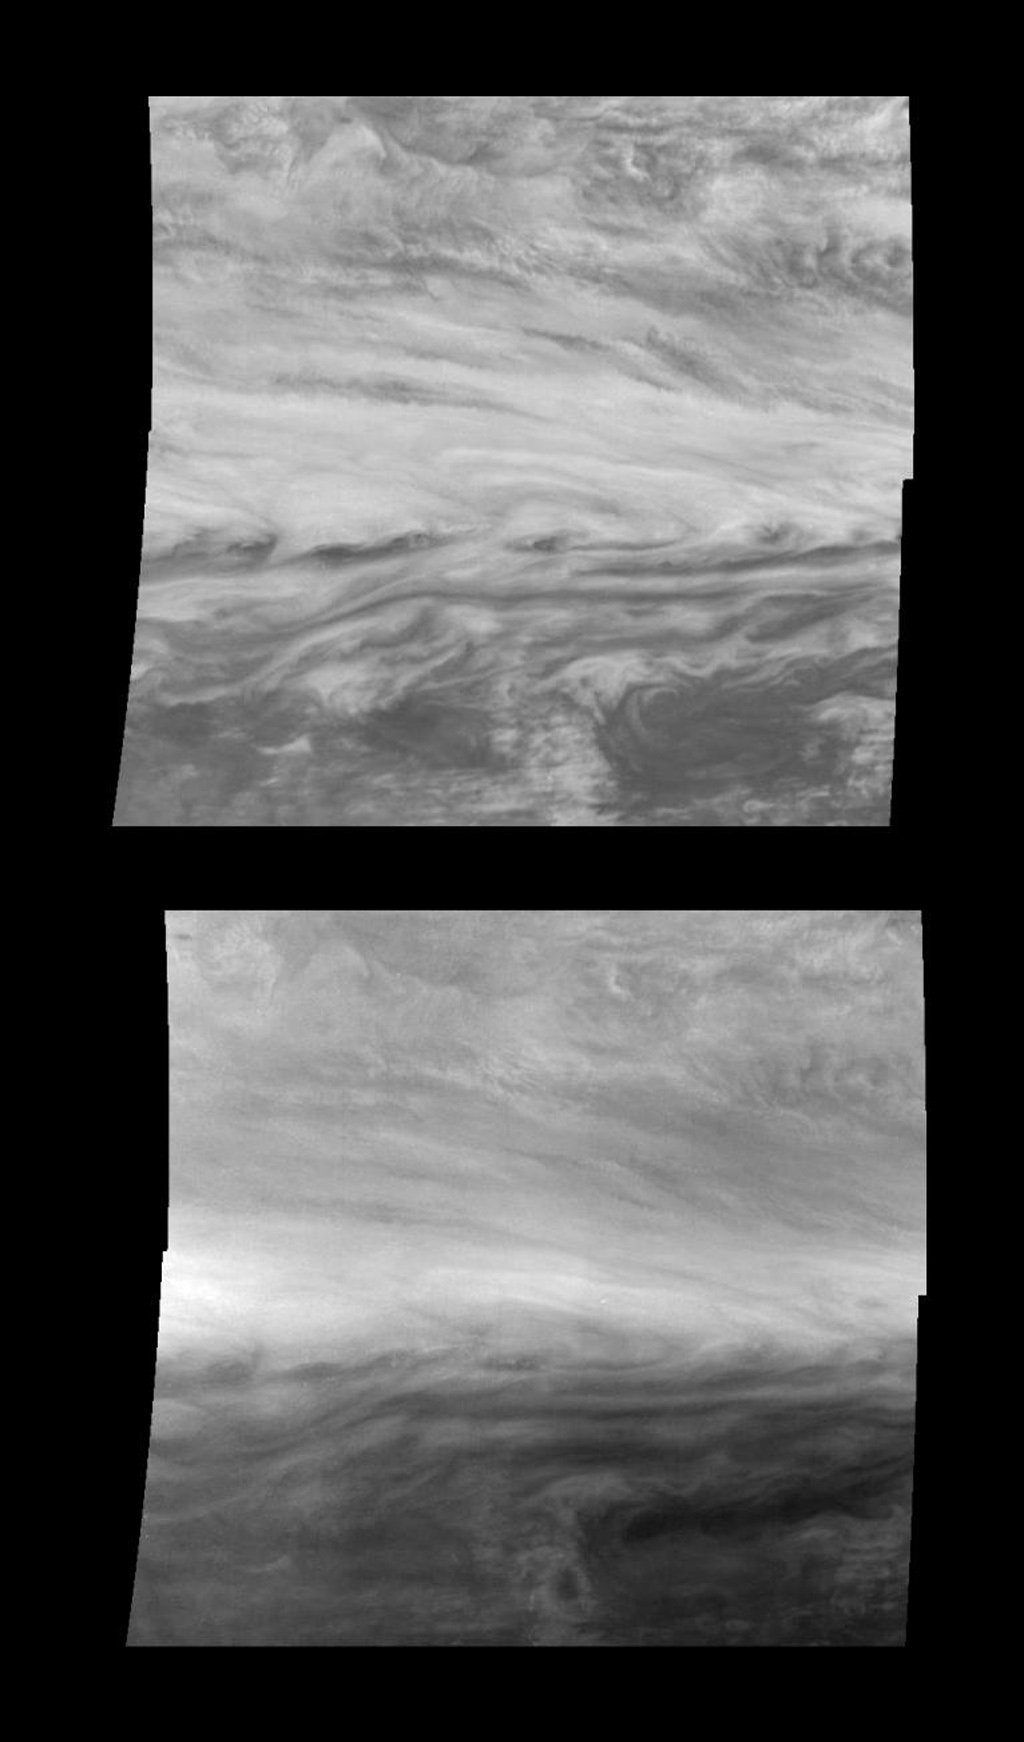 Mosaics of a belt-zone boundary near Jupiter's equator in violet (top panel) and near-infrared (bottom panel) light. The four images that make up each of these mosaics are from NASA's Galileo spacecraft.